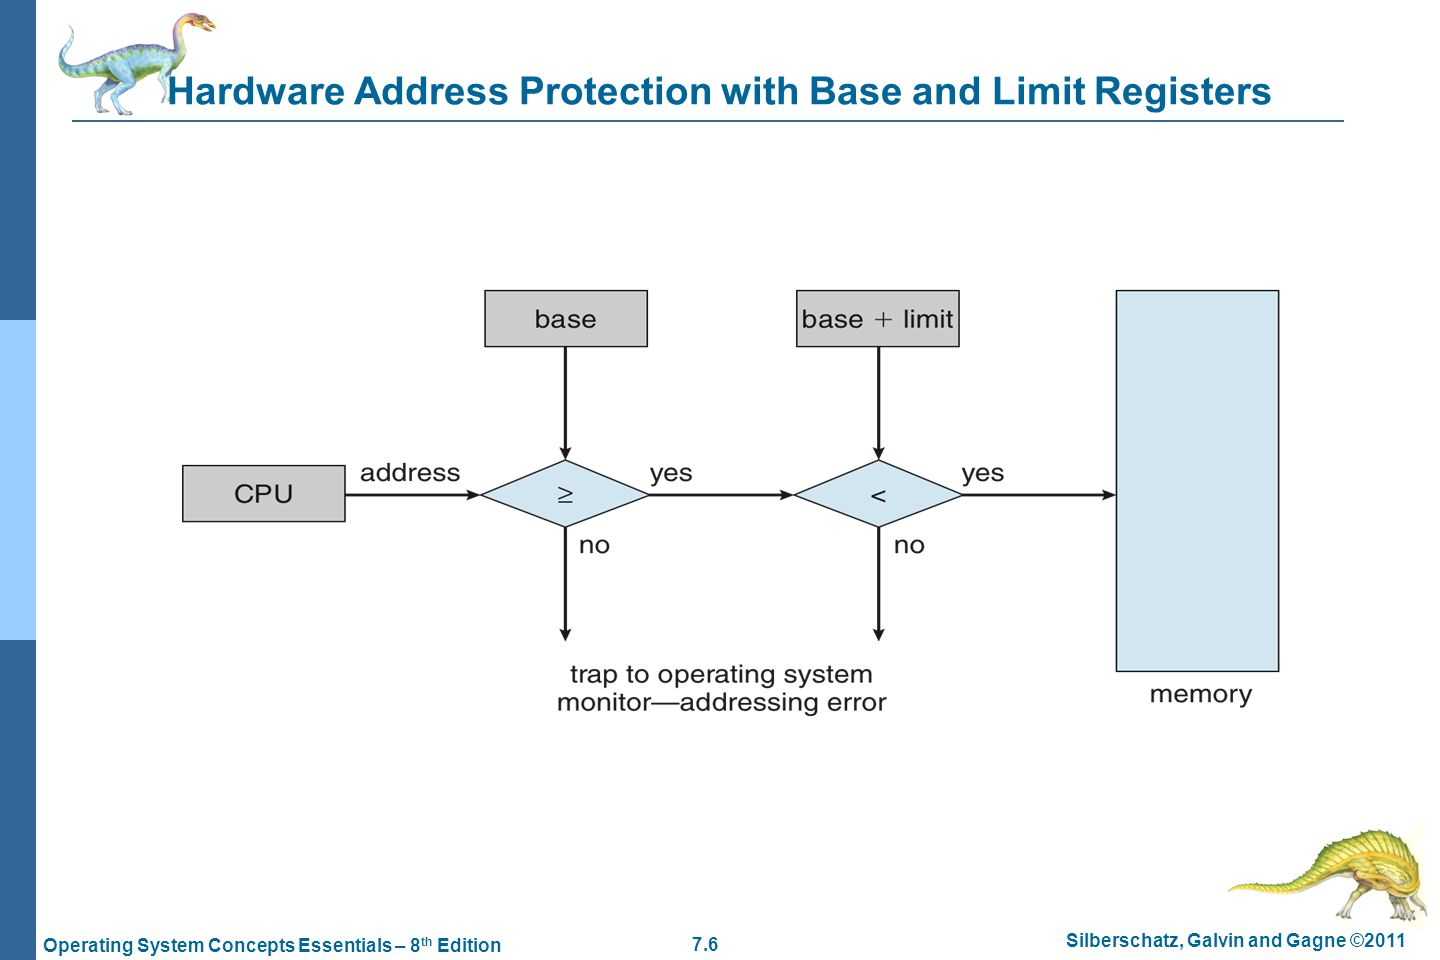 Hardware Address Protection with Base and Limit Registers